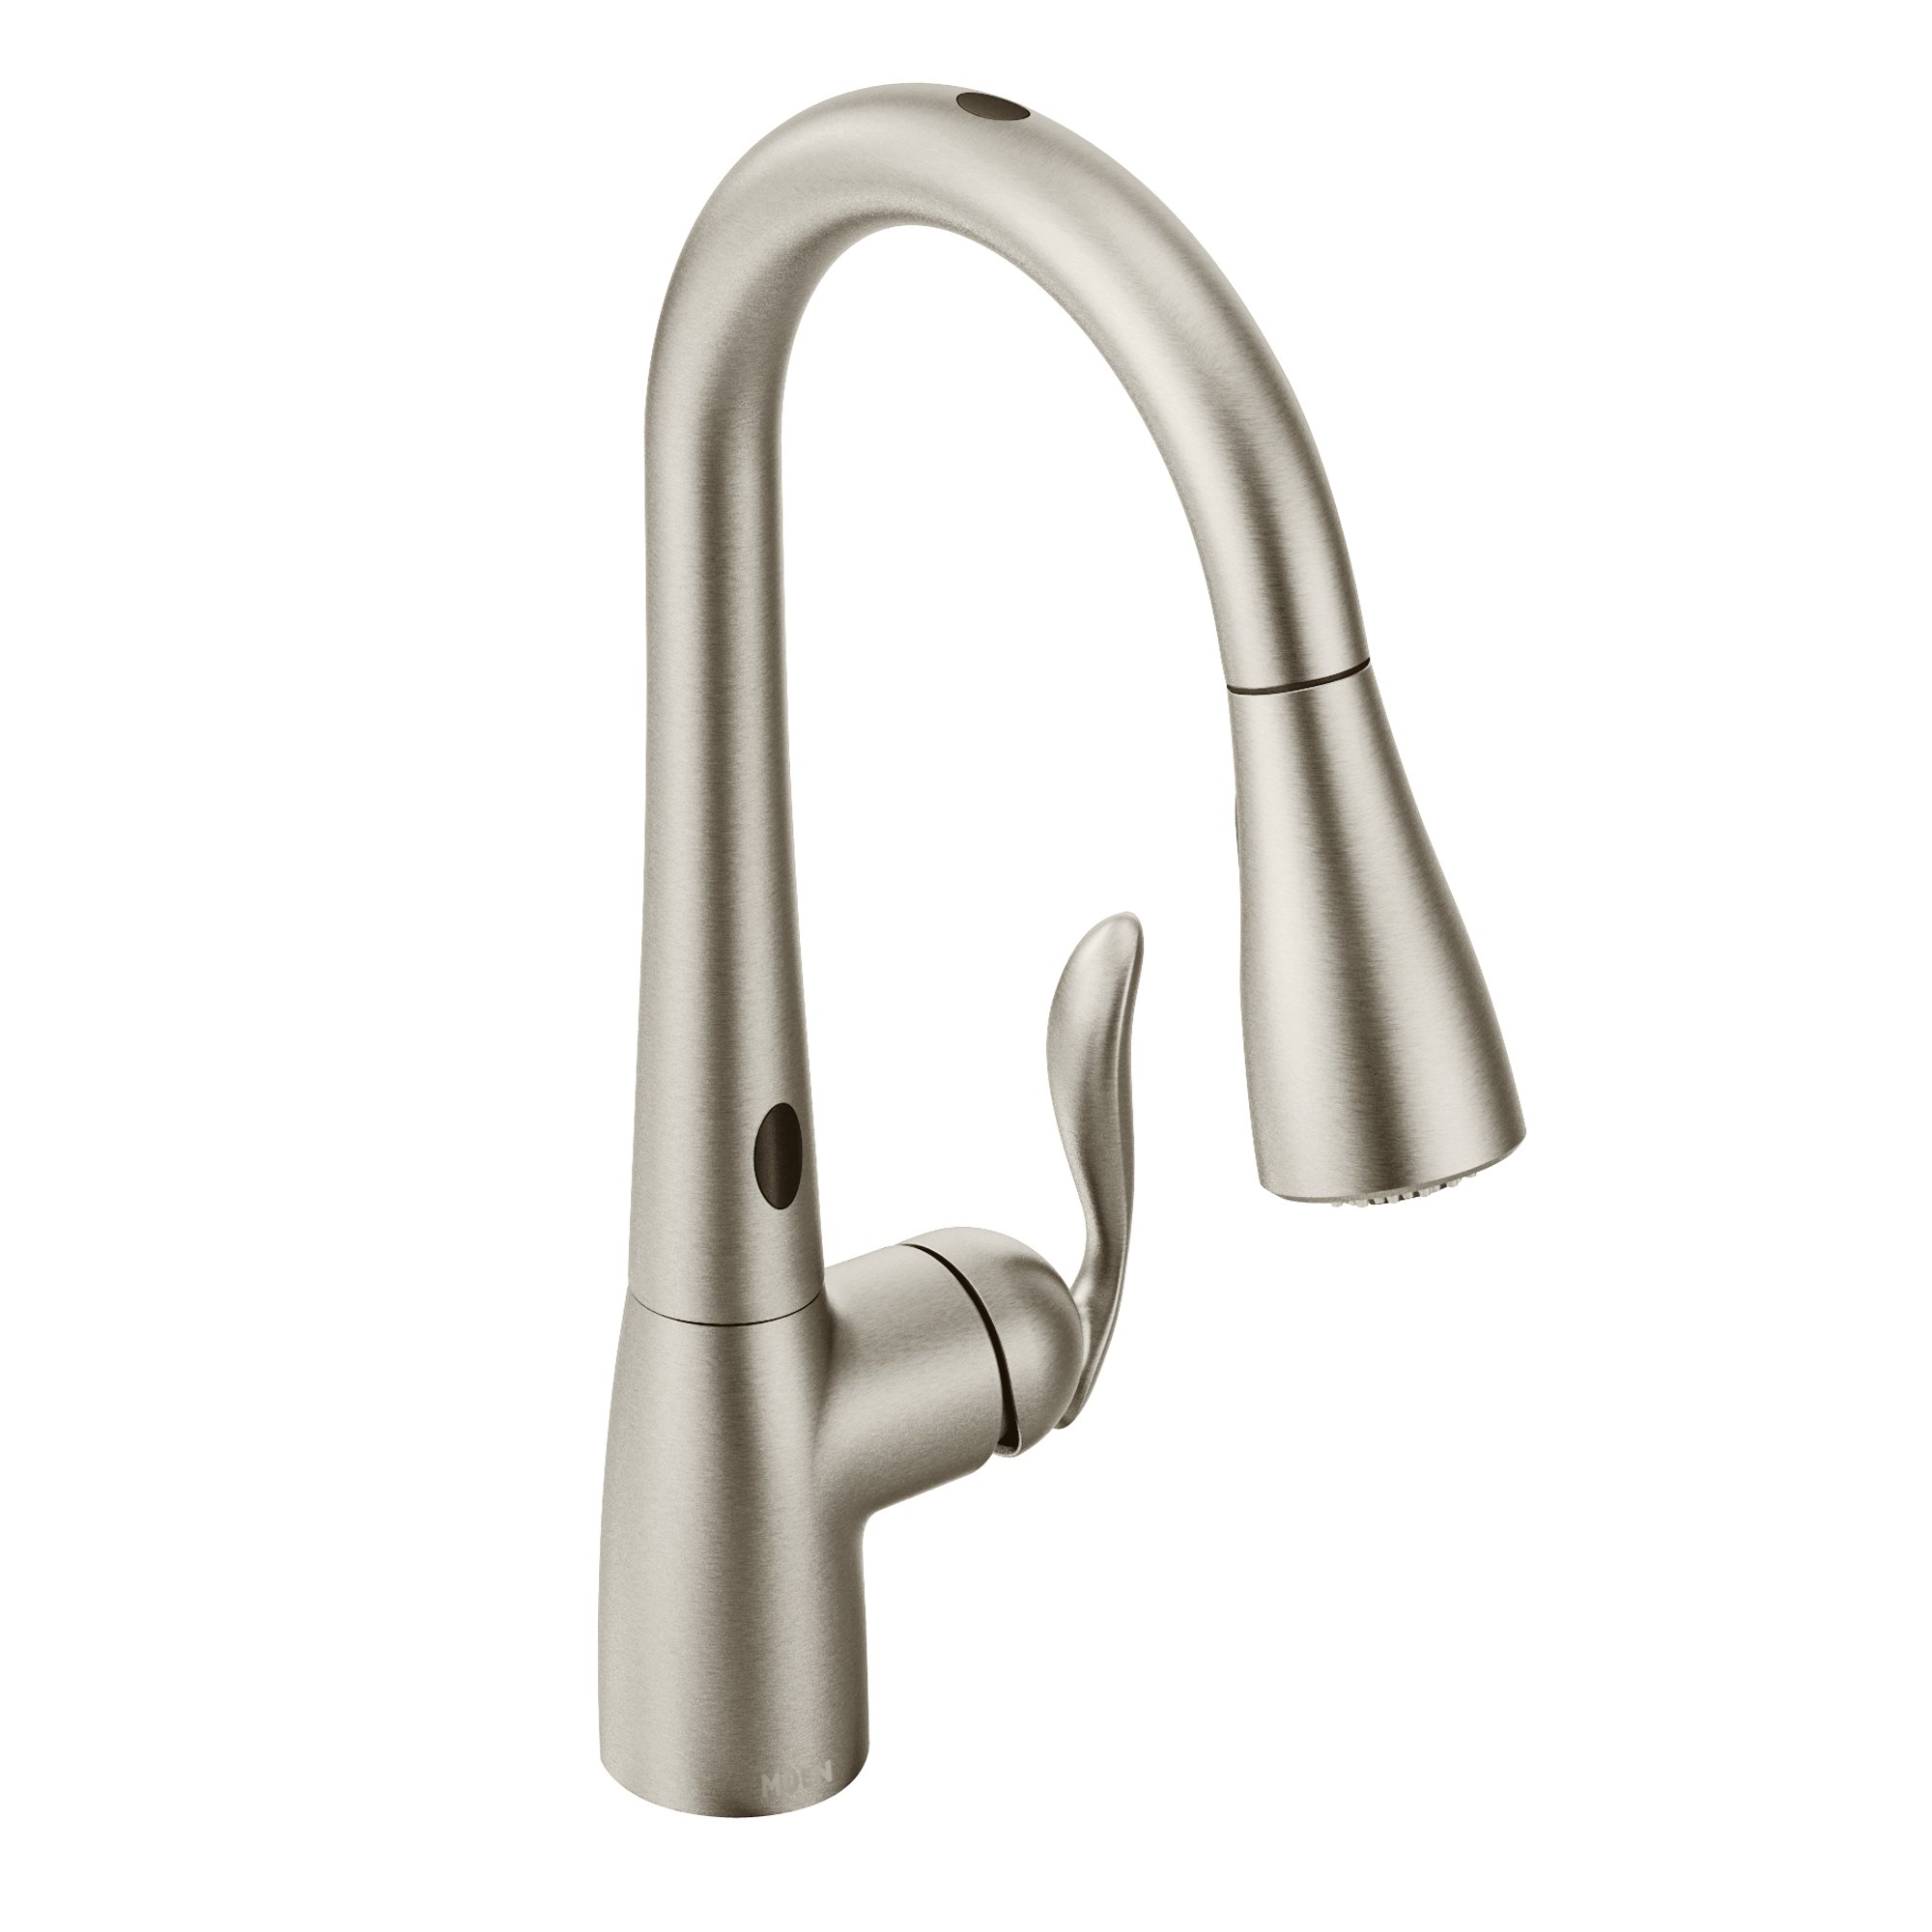 handle kitchen single faucet design best nice classic faucets rated photos china oak manufacturer collection top manufacturers